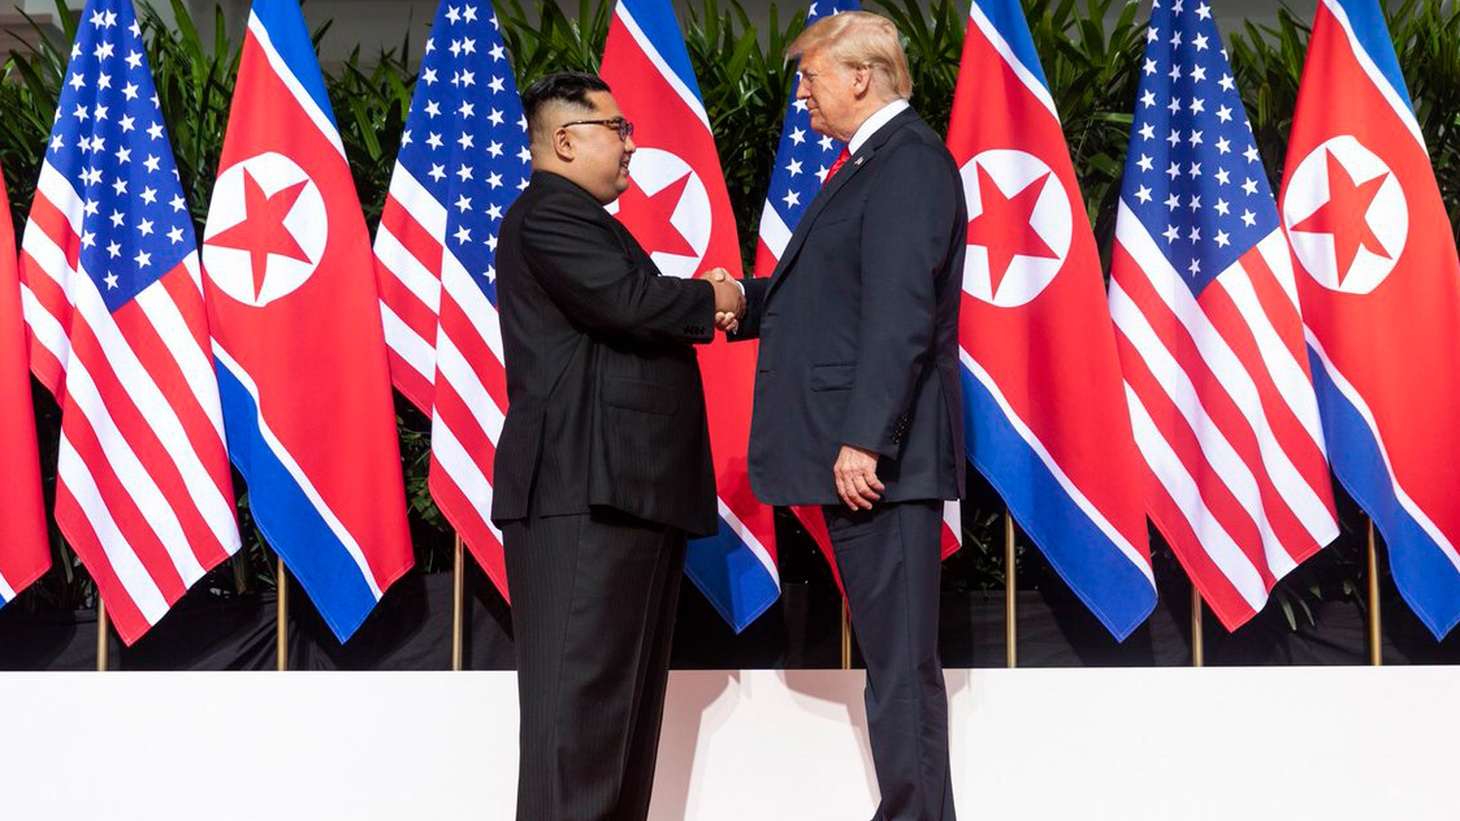 """Six months after threatening nuclear warfare, """"little rocket man"""" and the """"dotard"""" were talking peace in Singapore. Beyond the hype, did President Trump and Kim Jong Un really mean it?"""